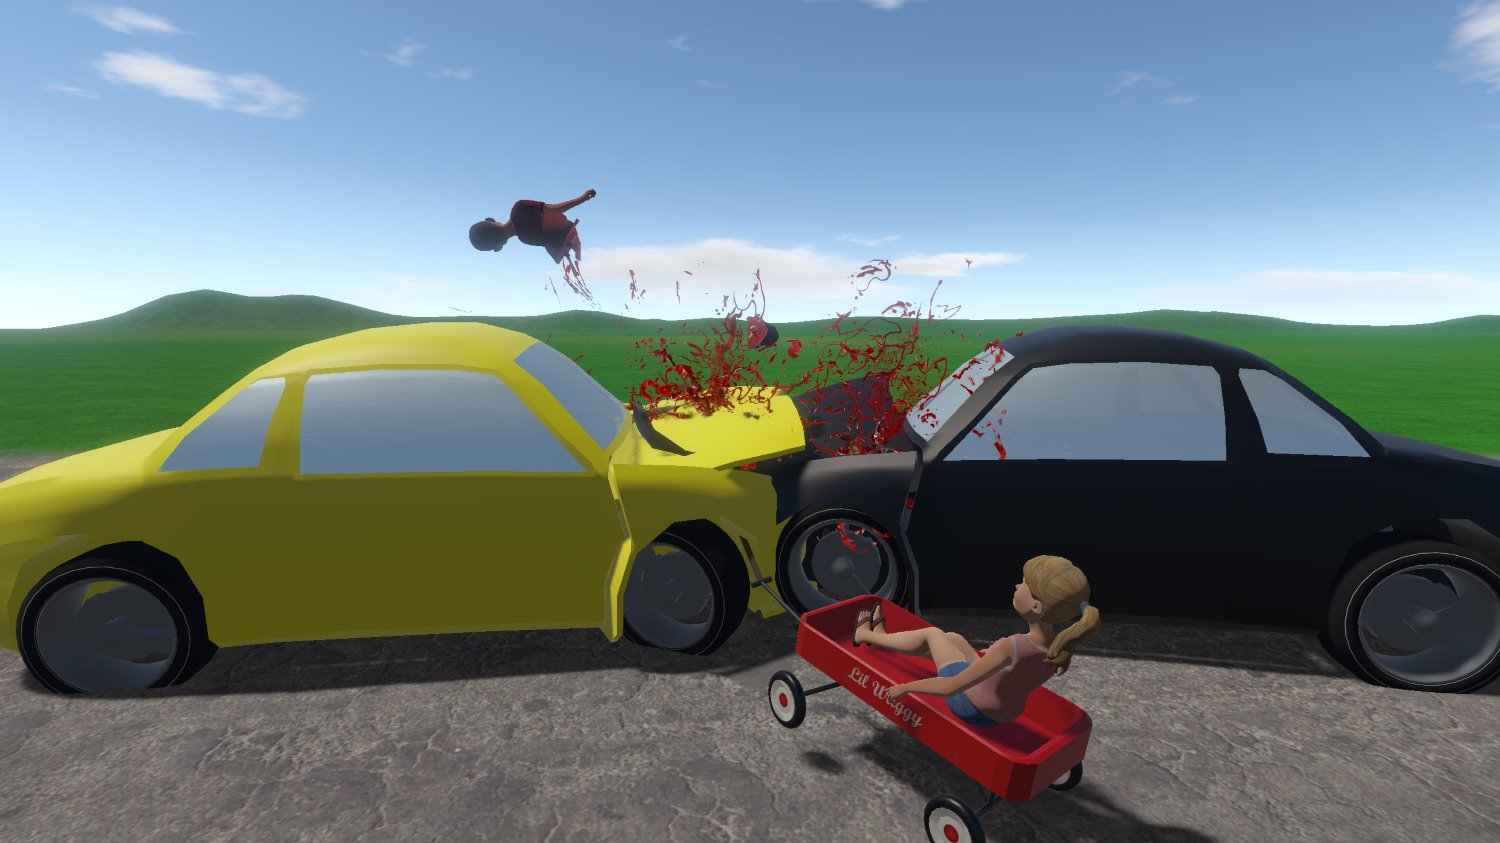 New characters Jack & Jill + AI Vehicles = 1 crazy combination!